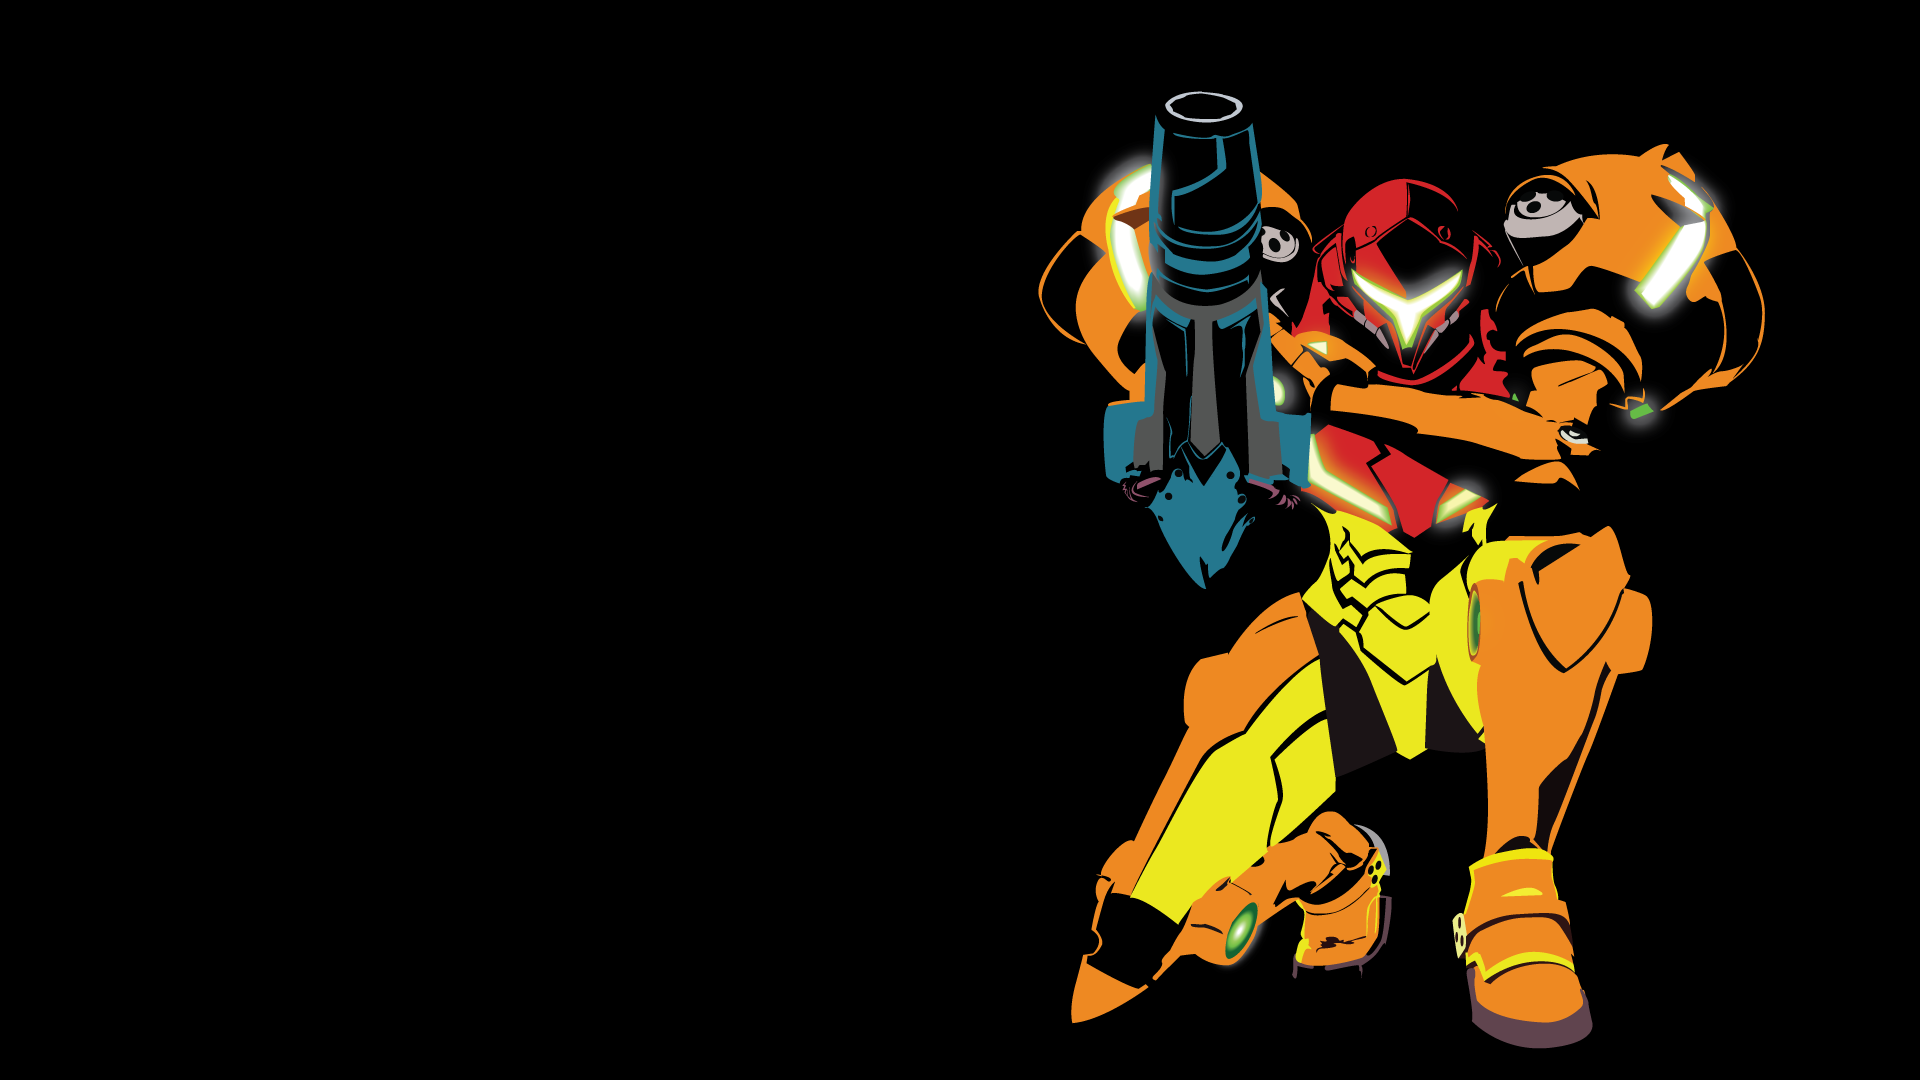 I Made A Vector Minimalist Wallpaper 1920x1080 Of Samus In Her